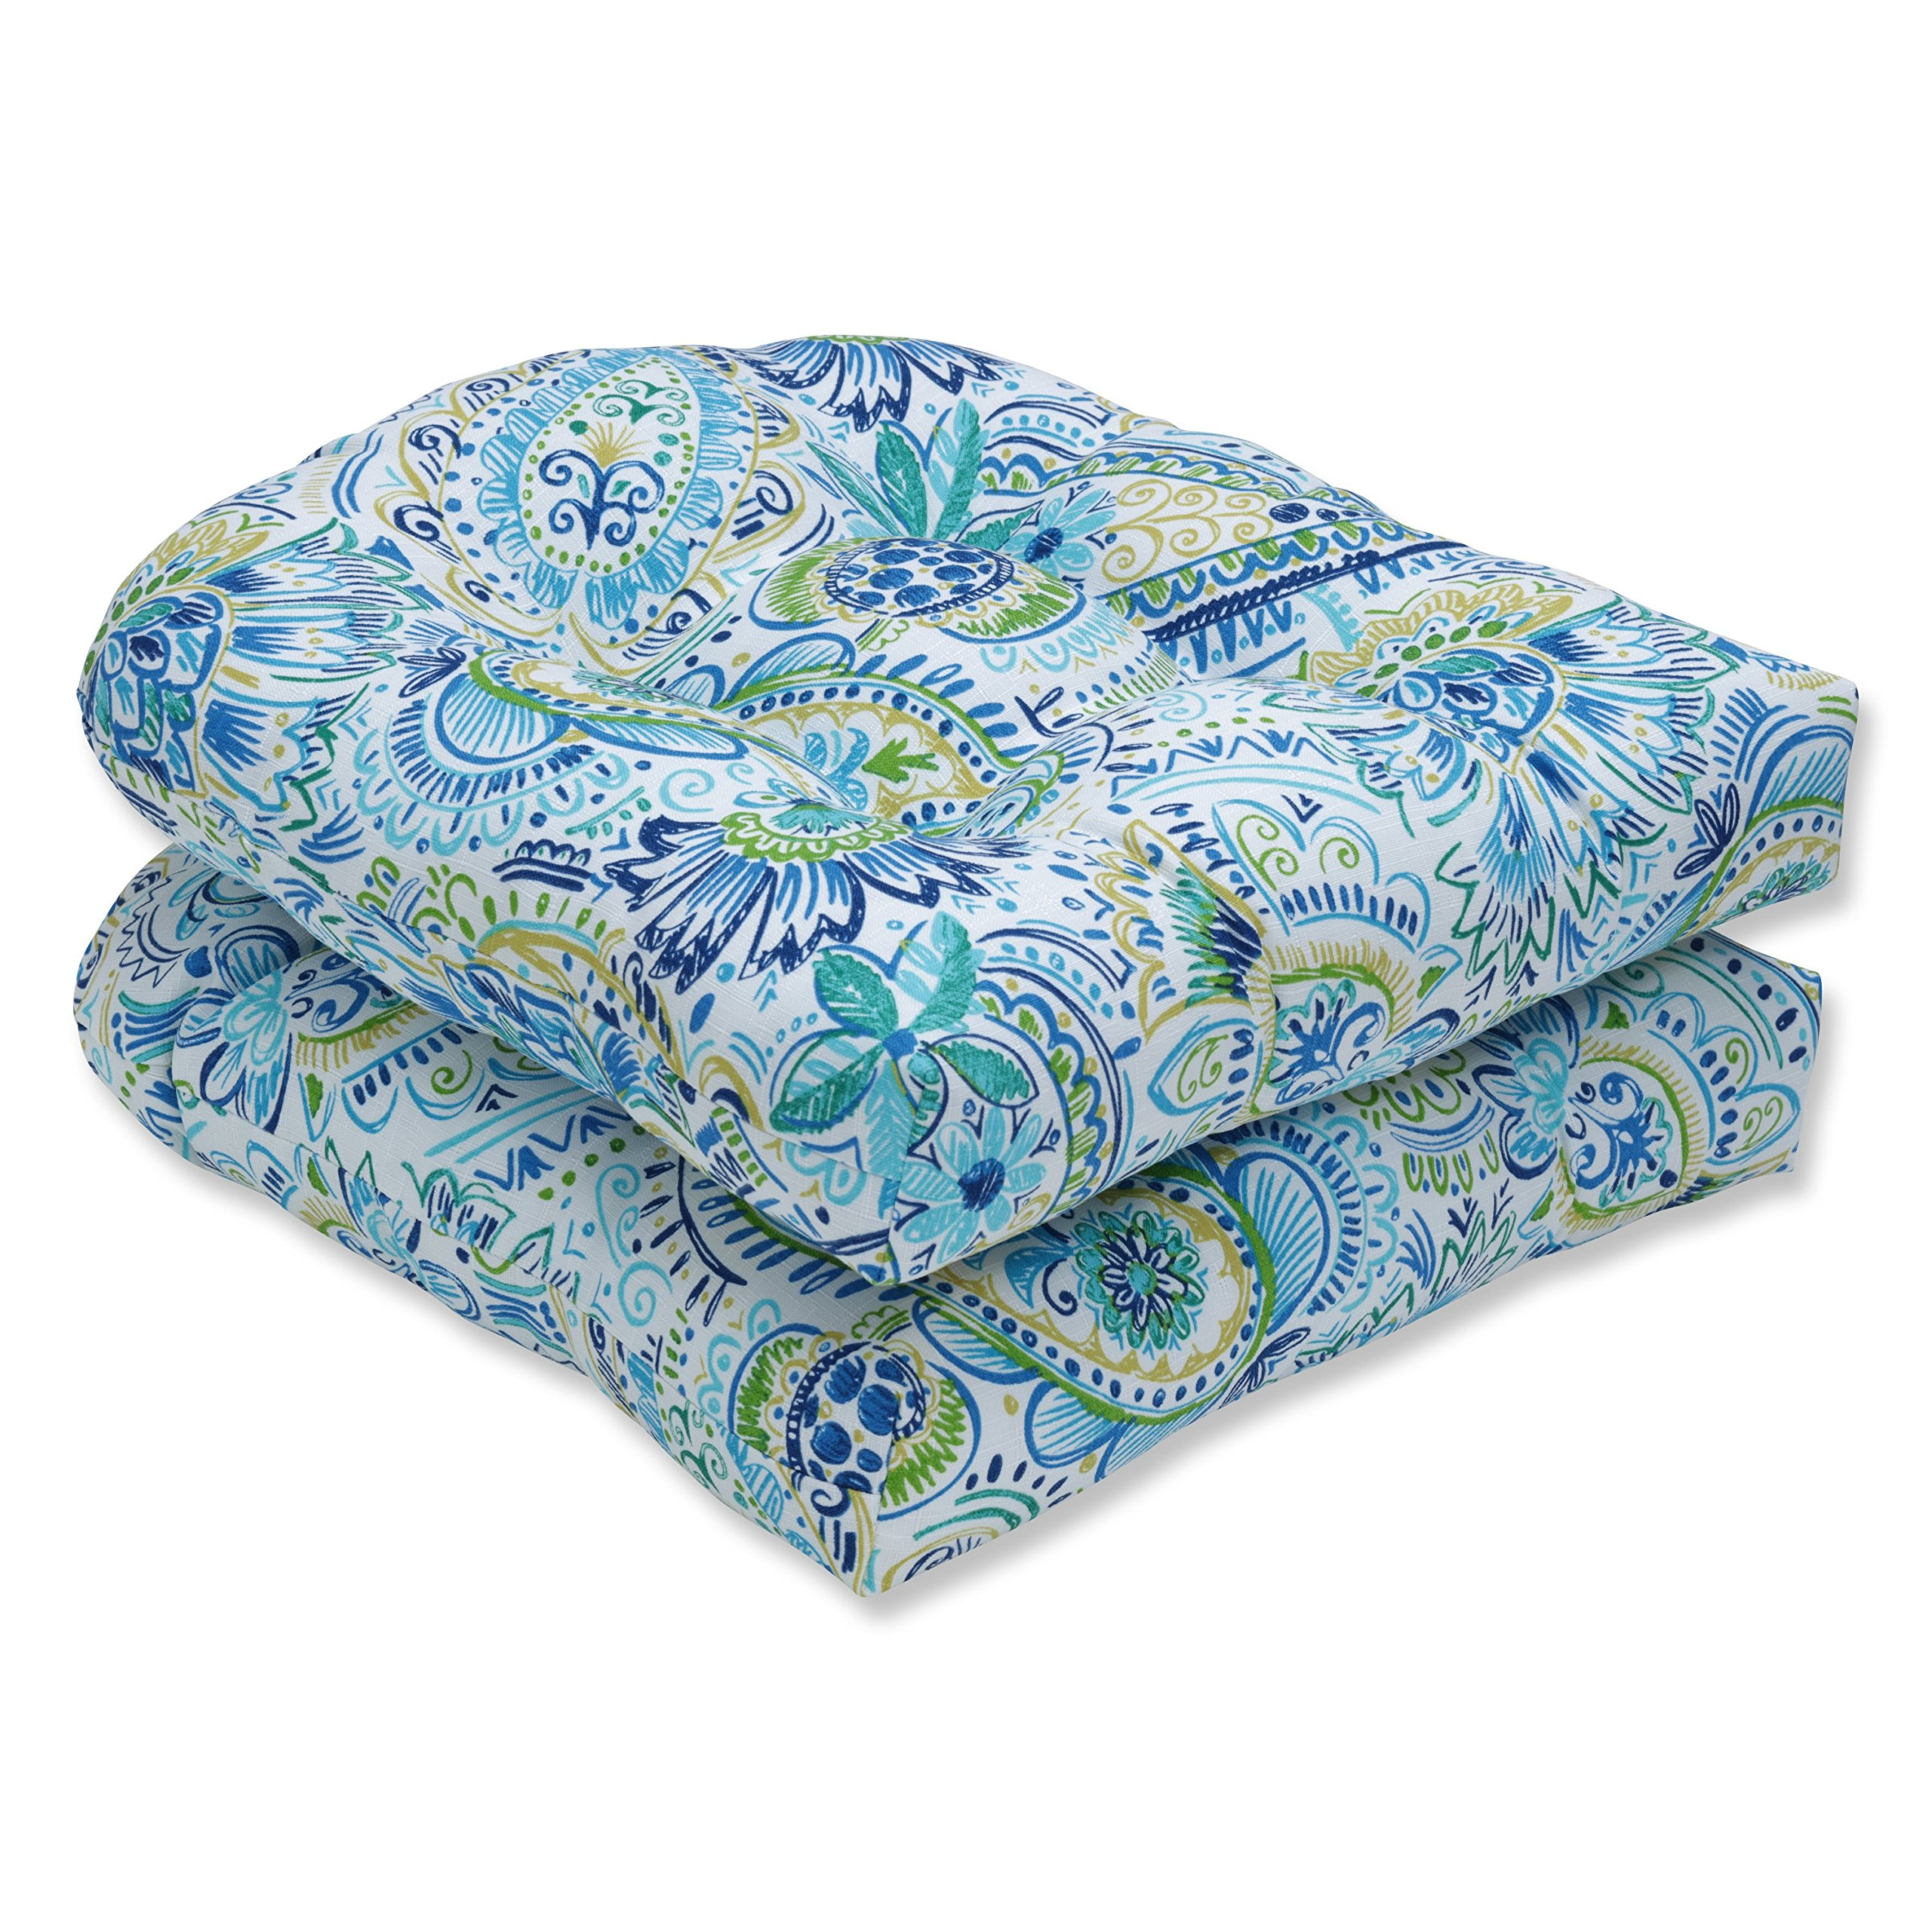 Pillow Perfect Outdoor | Indoor Gilford Baltic Wicker Seat Cushion (Set of 2), 2 Piece by Pillow Perfect